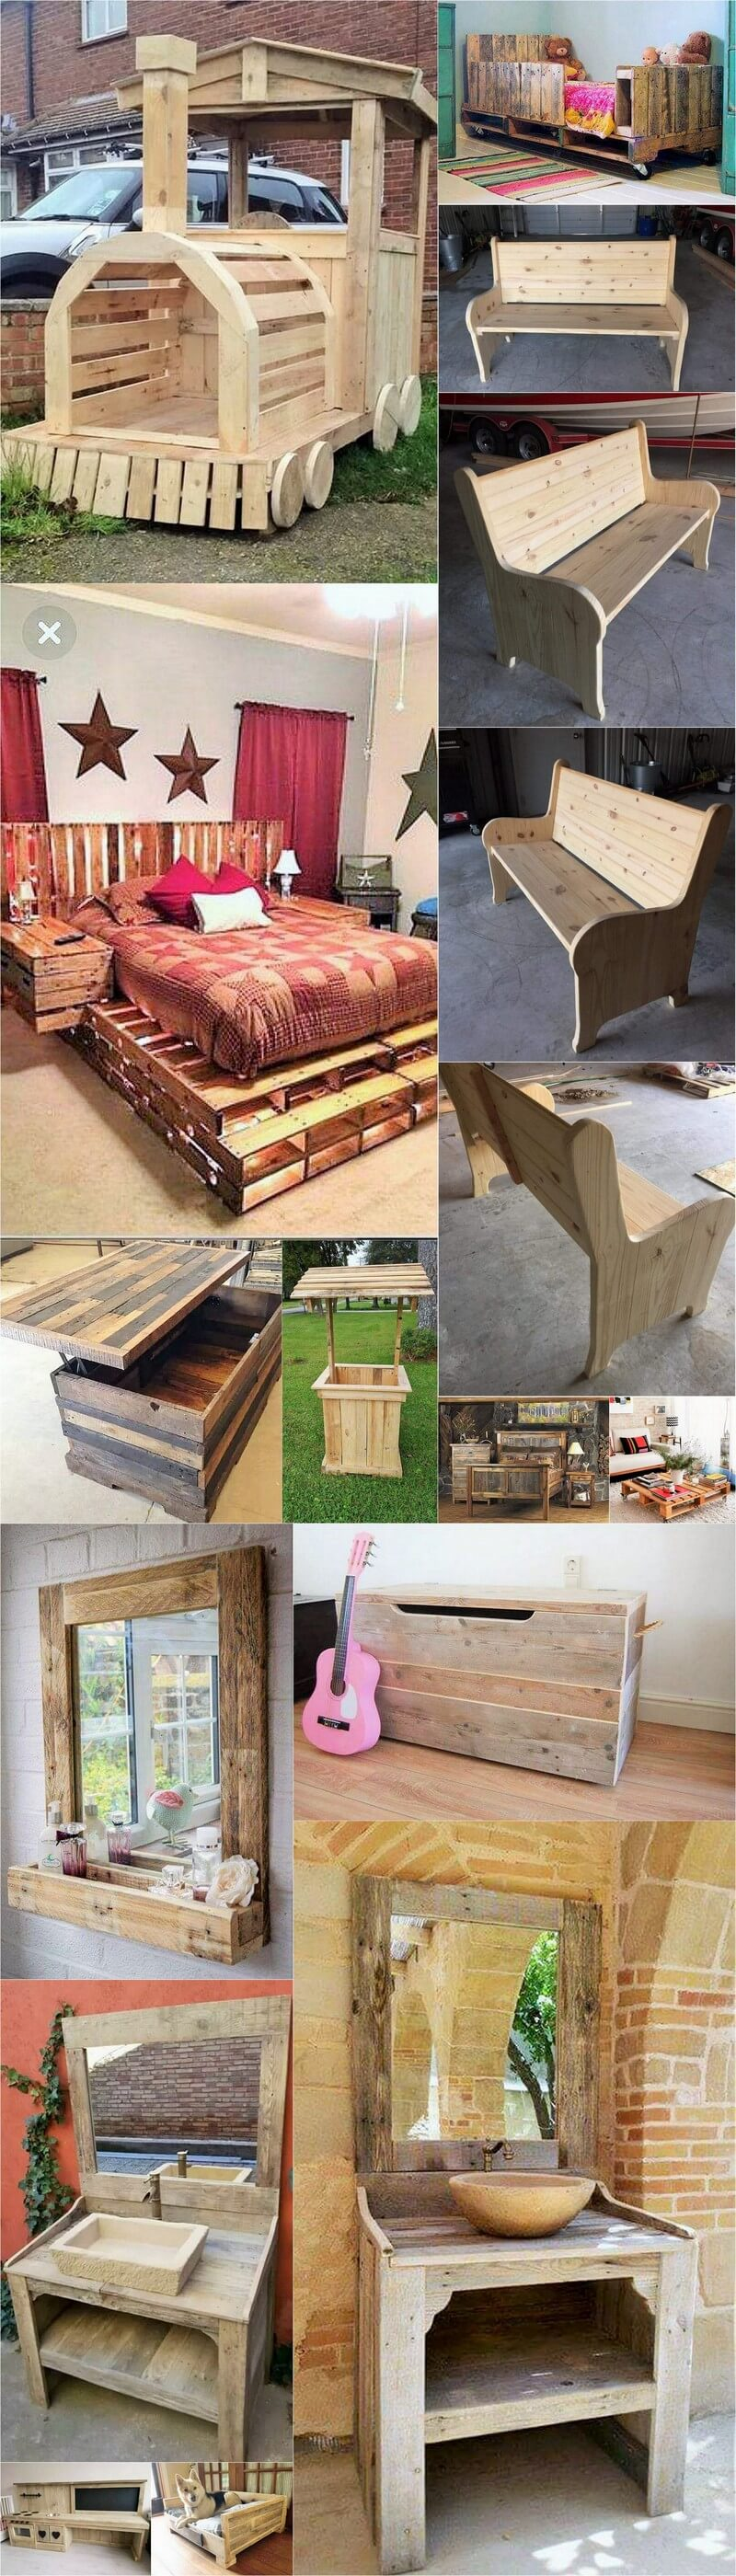 pallet furniture for sale